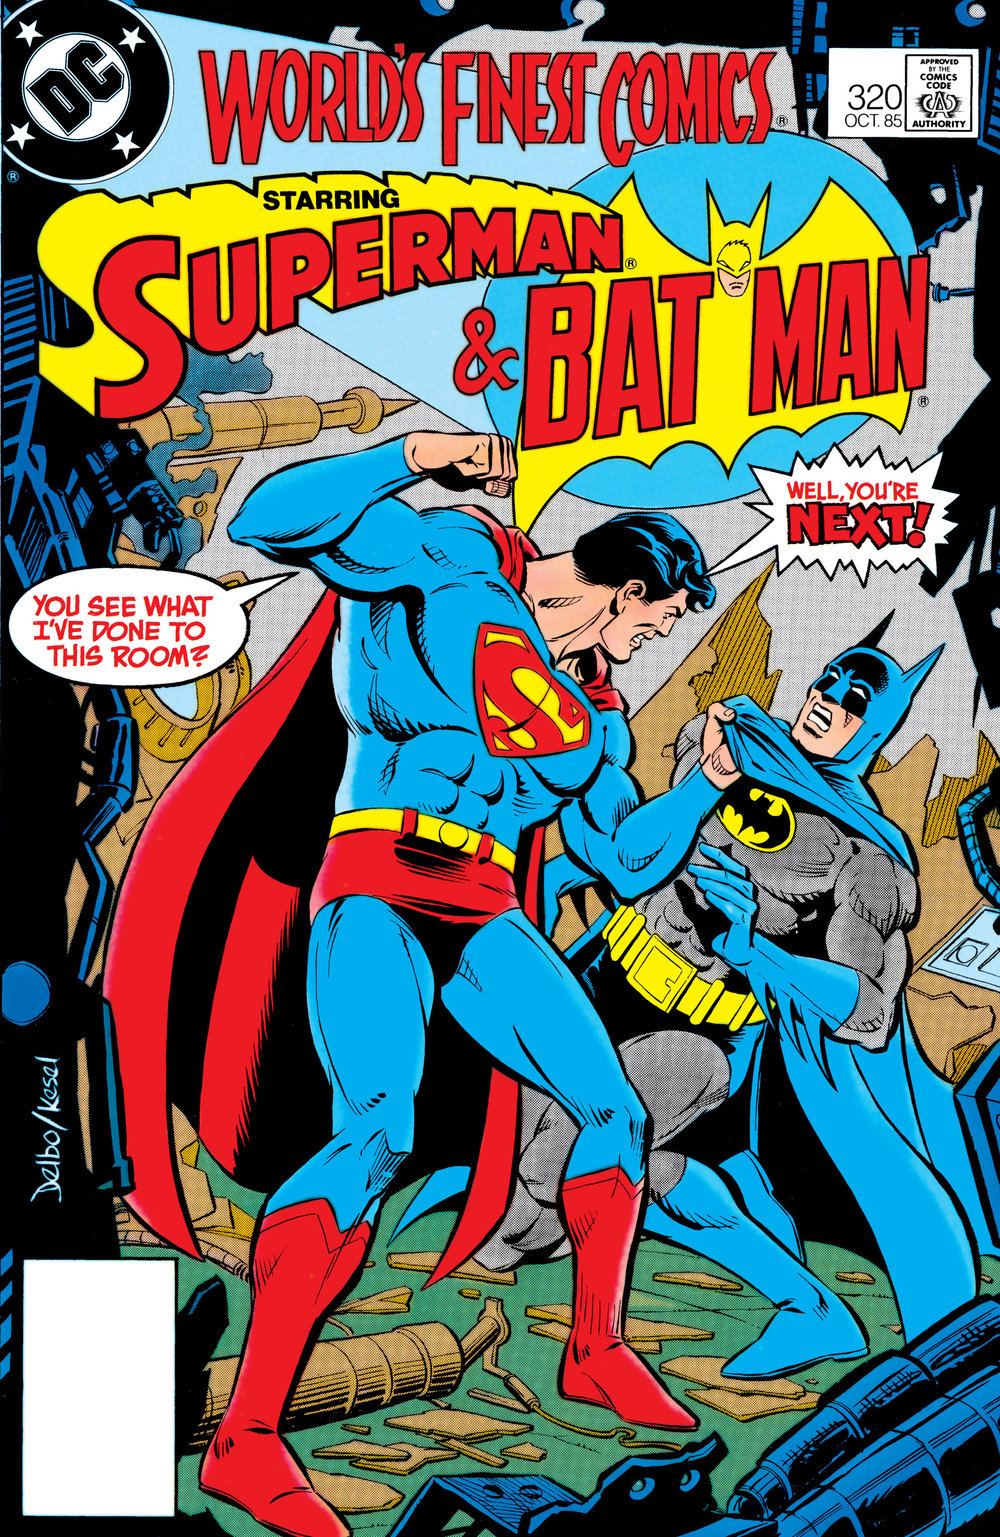 World's Finest Comics (1941) #320, cover penciled by Jose Delbo & inked by Karl Kessel.